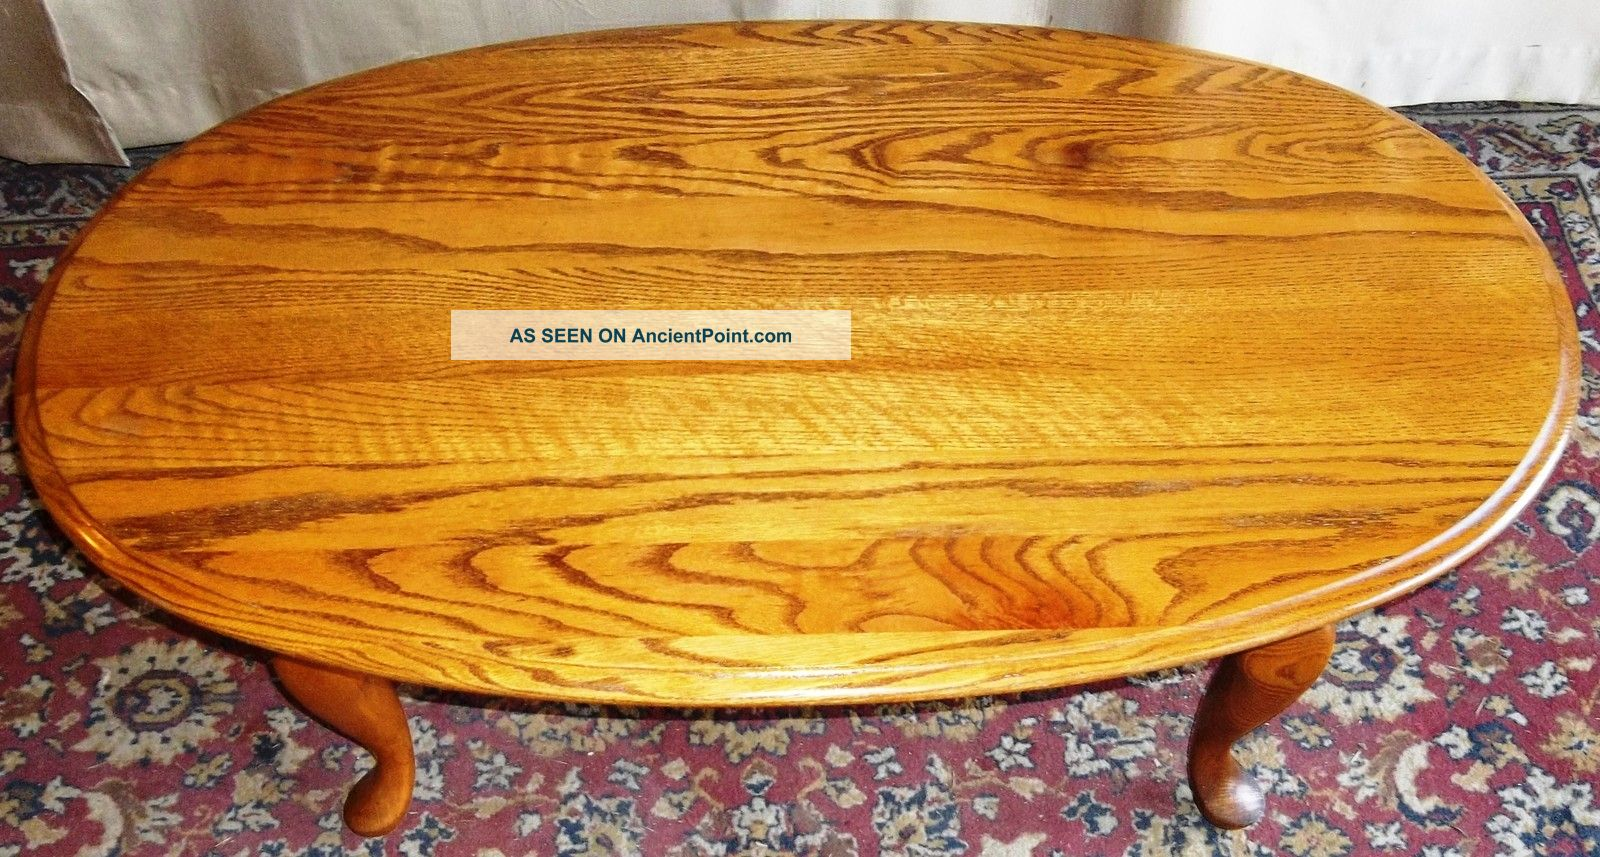 Vintage Broyhill Oak Queen Anne Oval Coffee Table Post-1950 photo